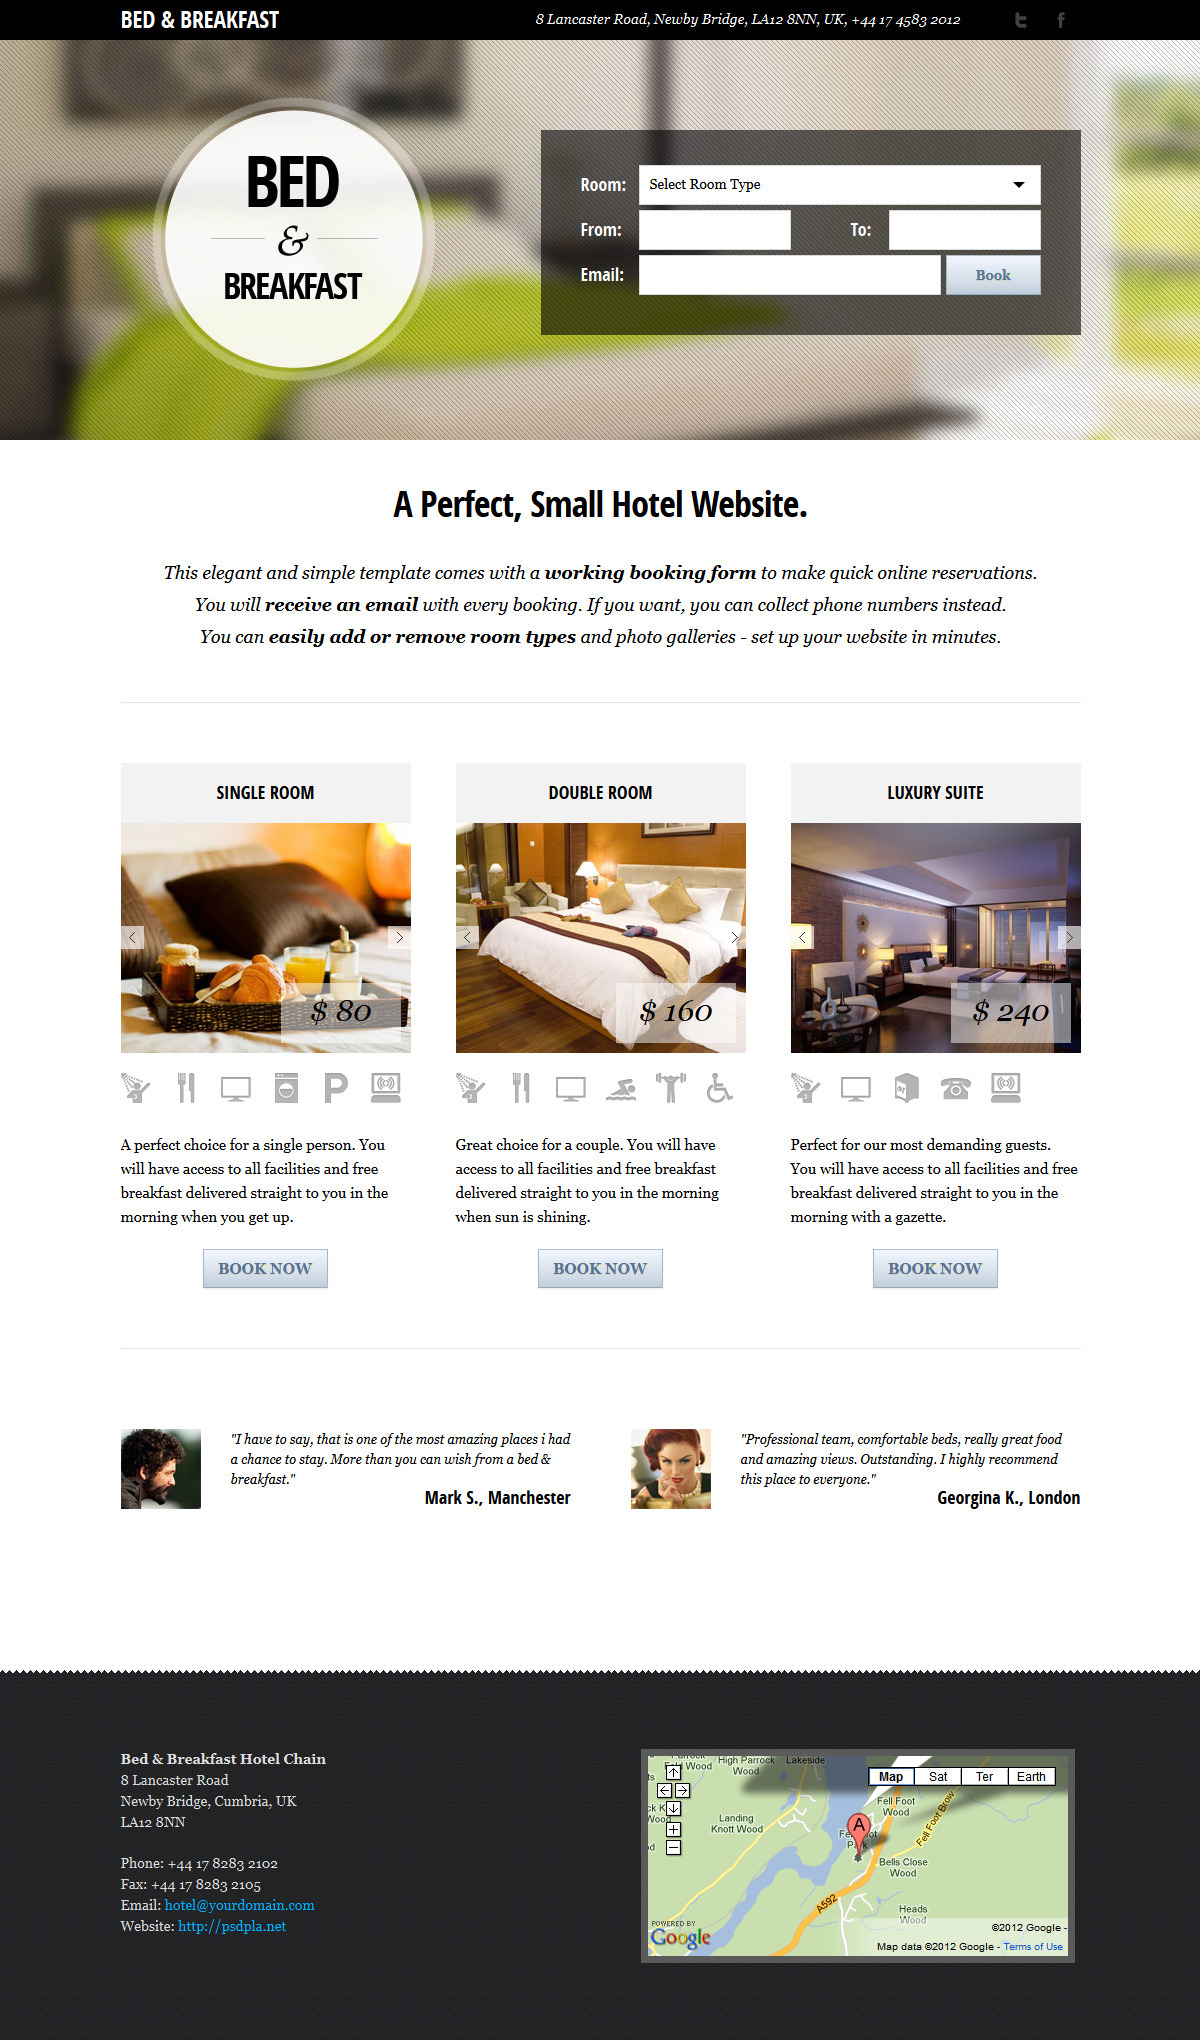 Bed & Breakfast - Hotel Landing Page - Landing Page Design